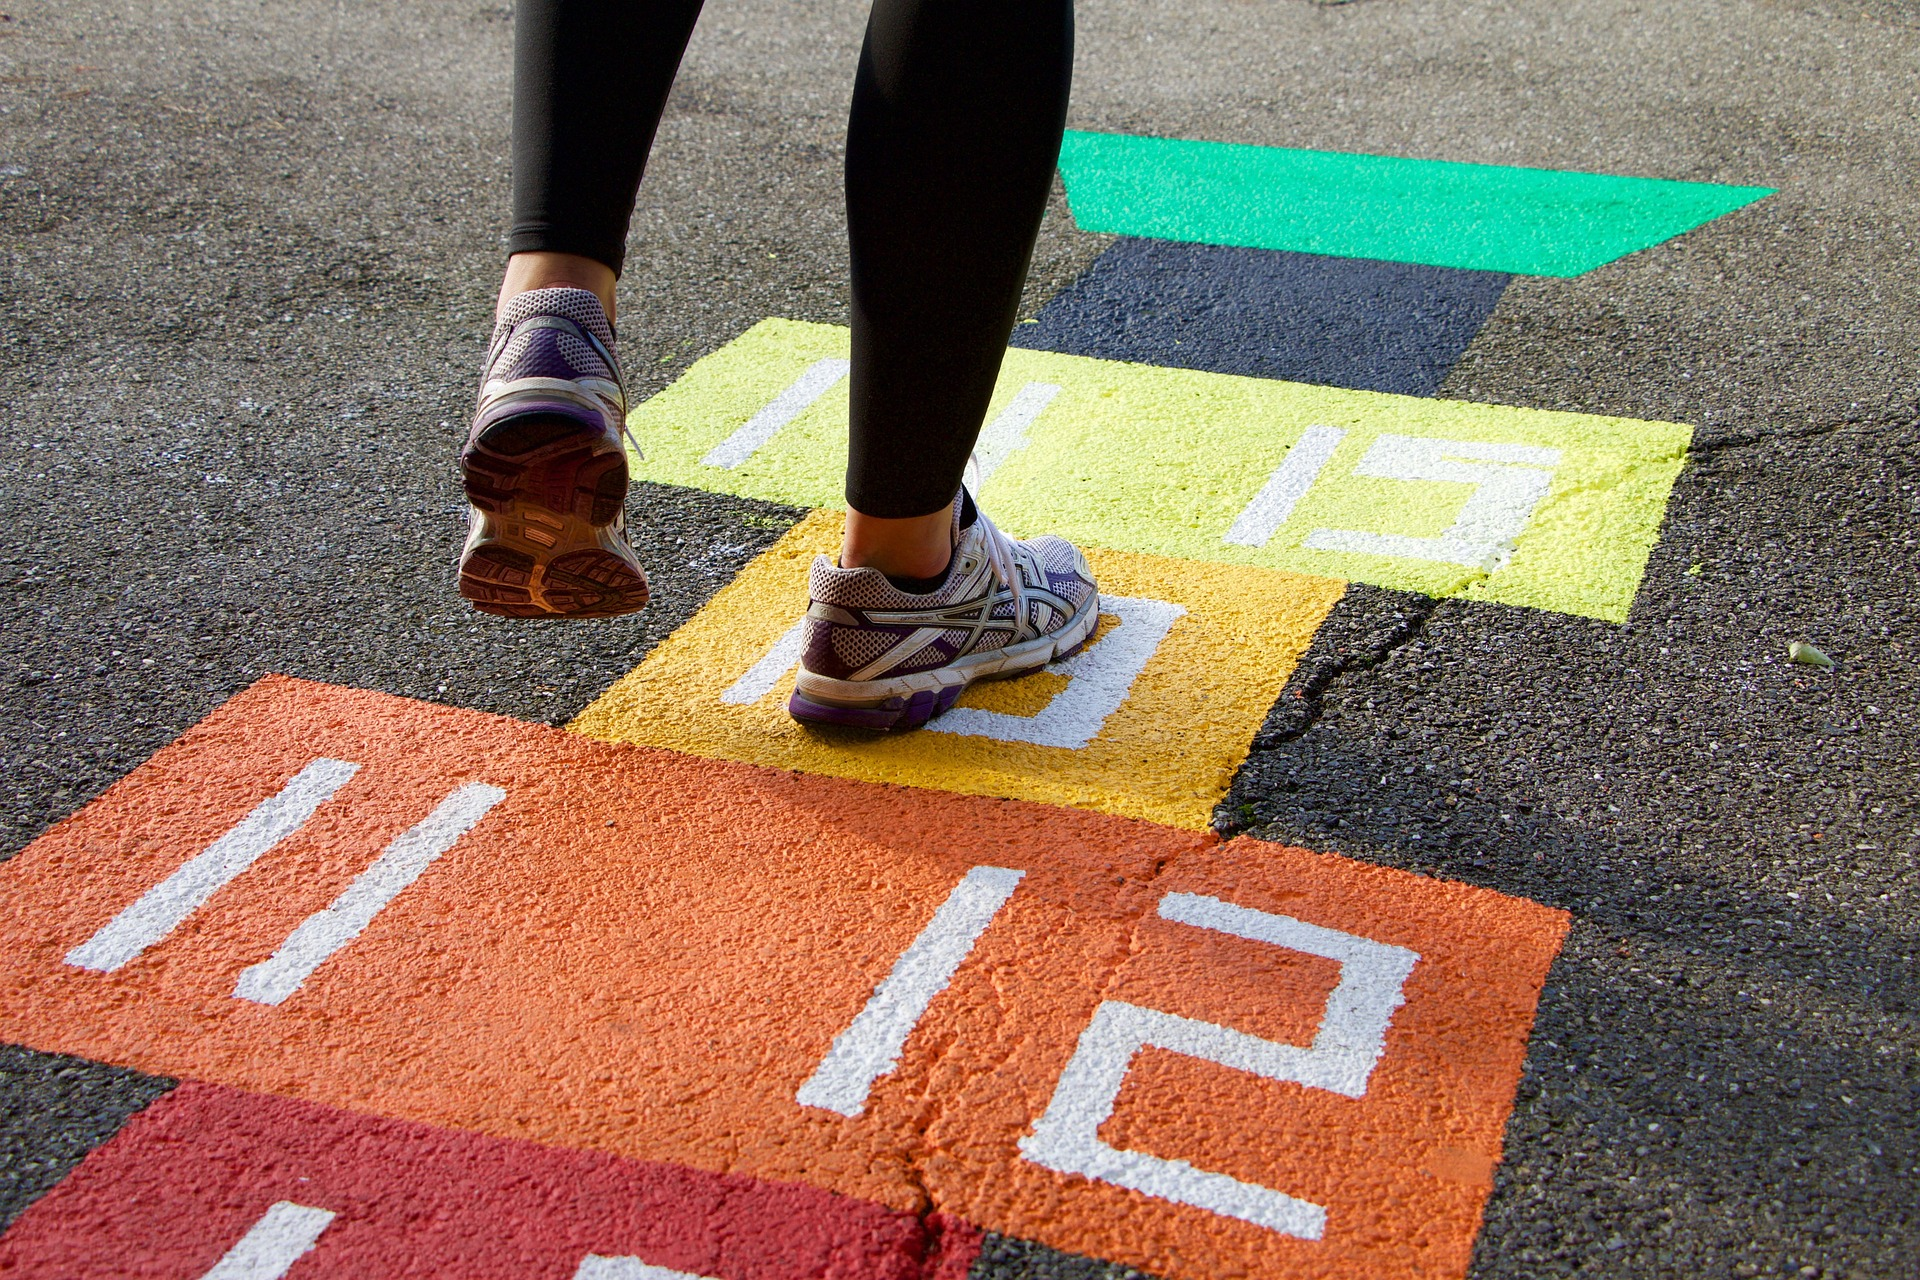 child jumping on a colorful hopscotch court outdoors